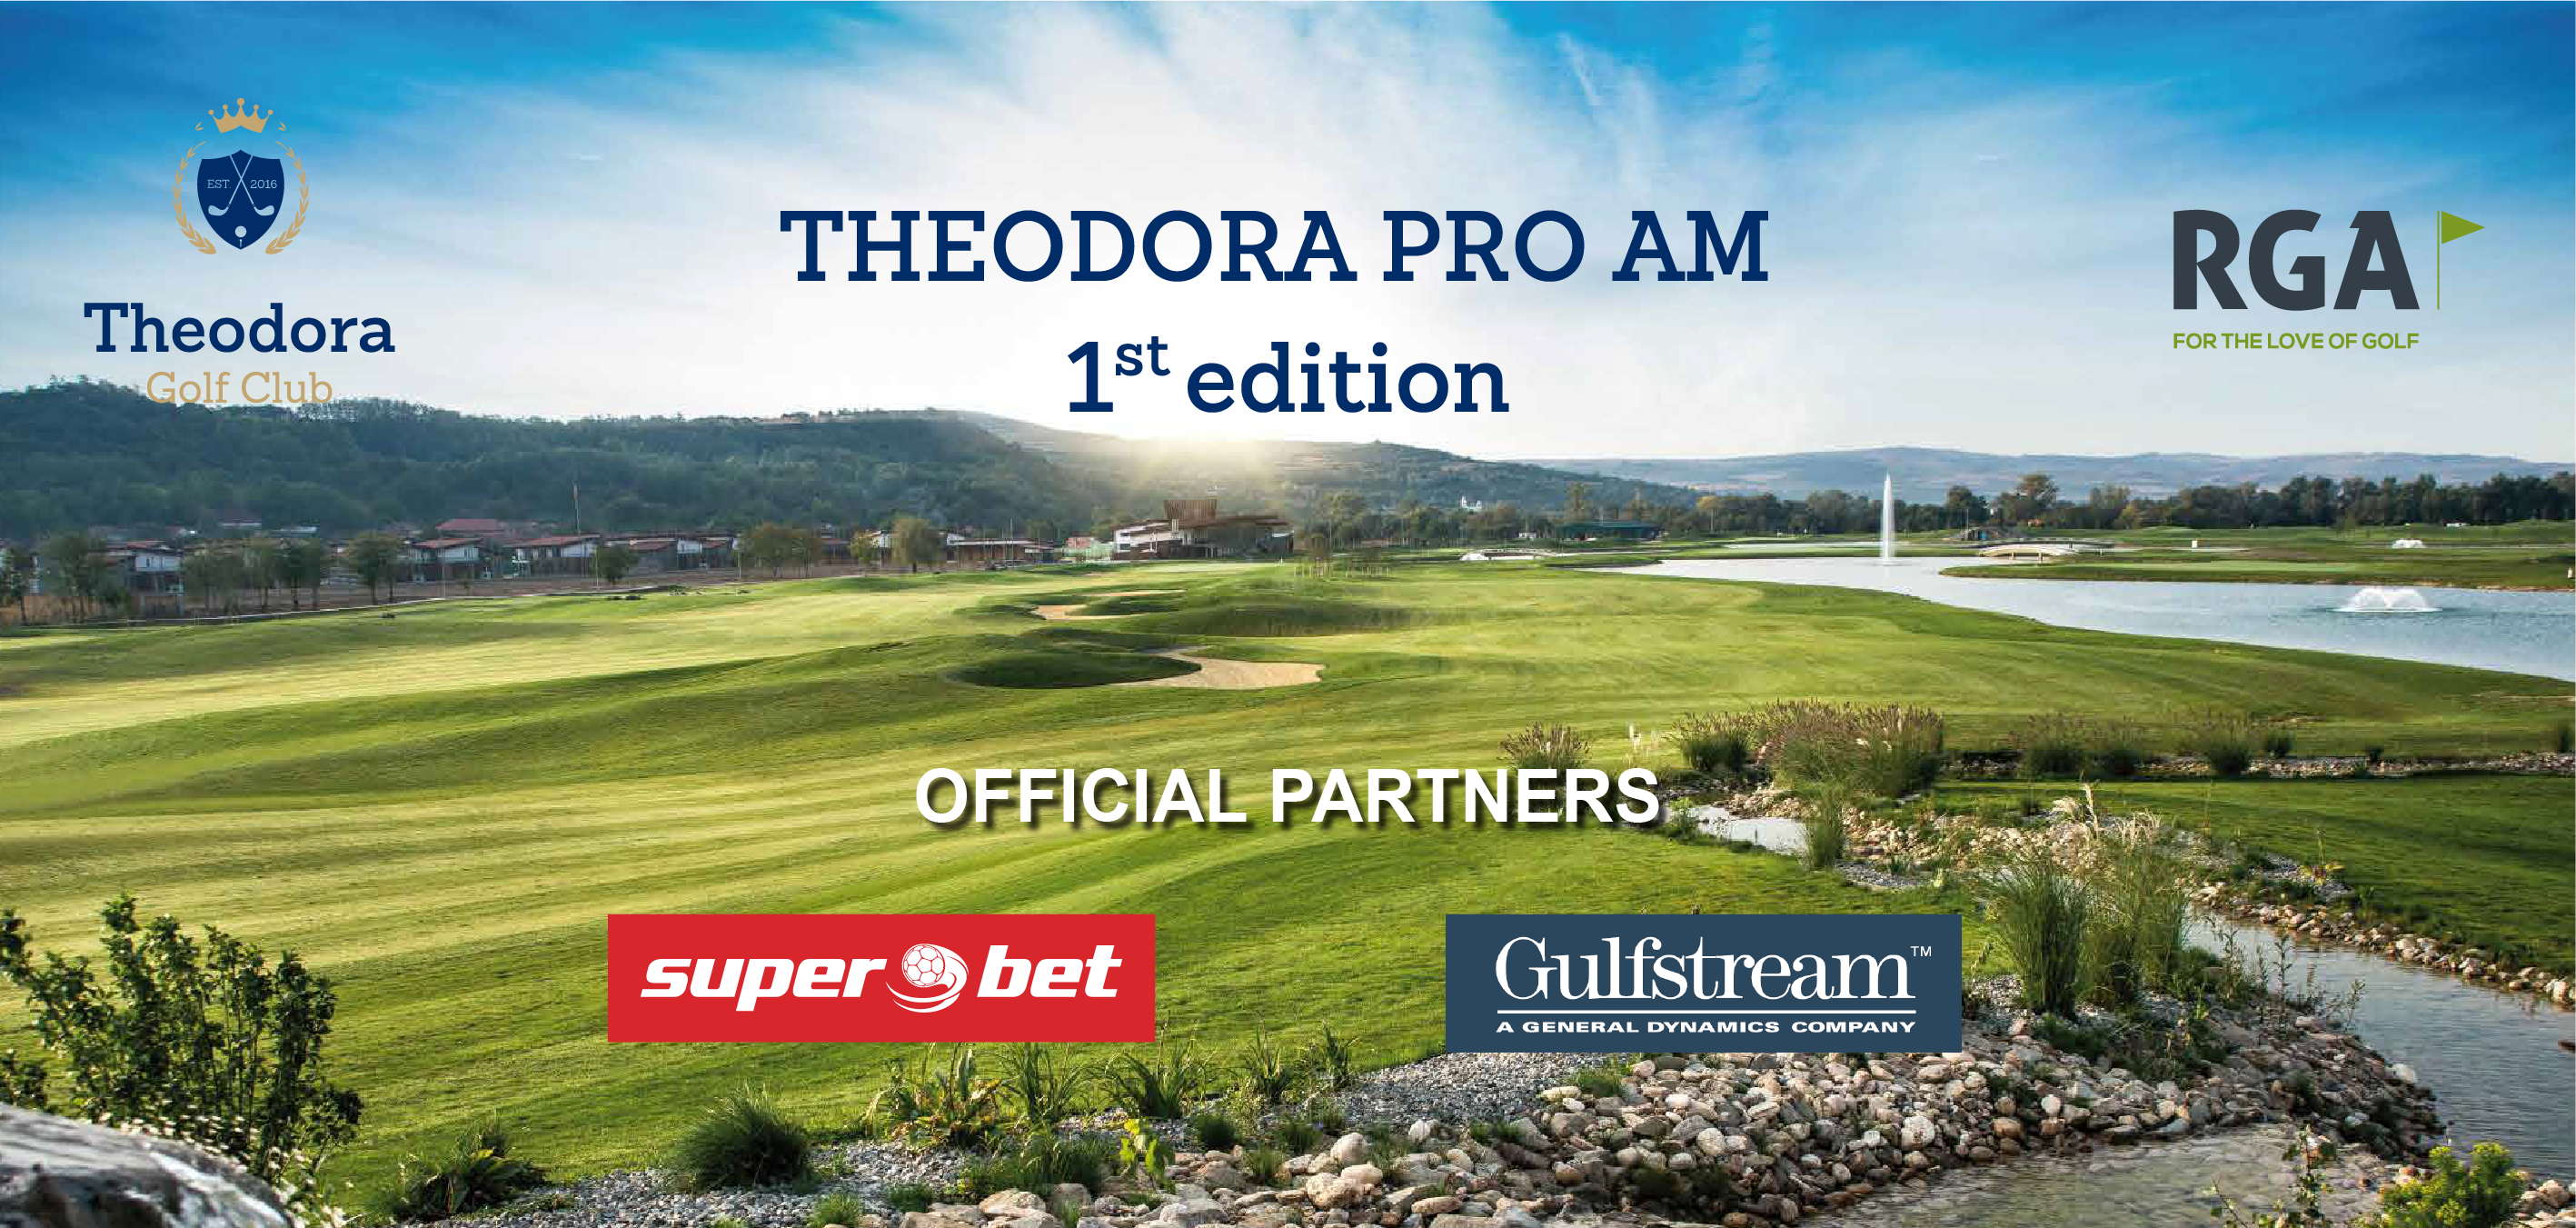 Theodora ProAm 1st edition 2019